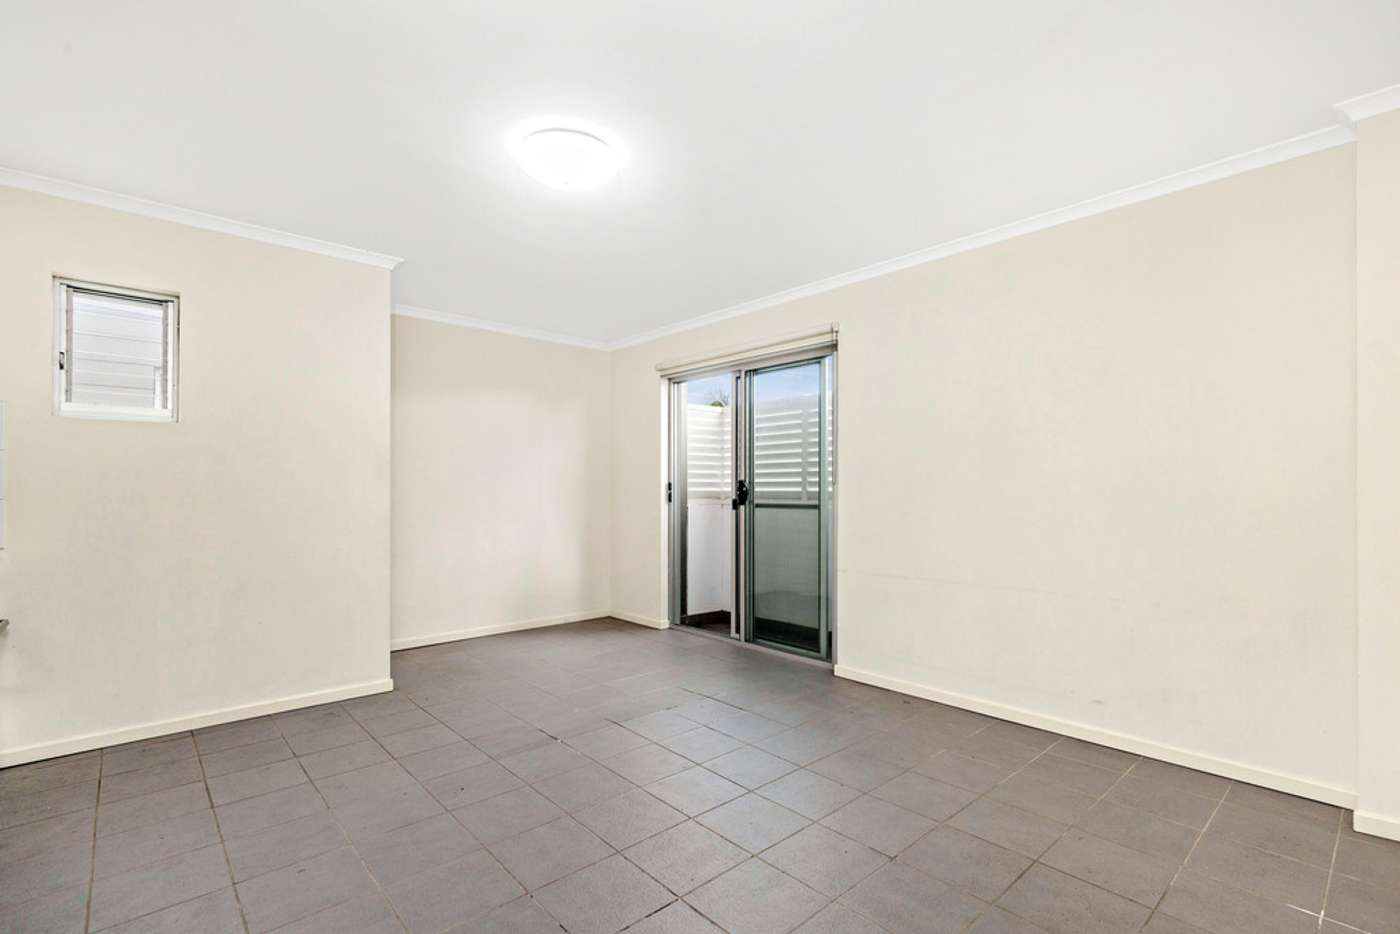 Sixth view of Homely unit listing, 1/23 Ada Street, Concord NSW 2137